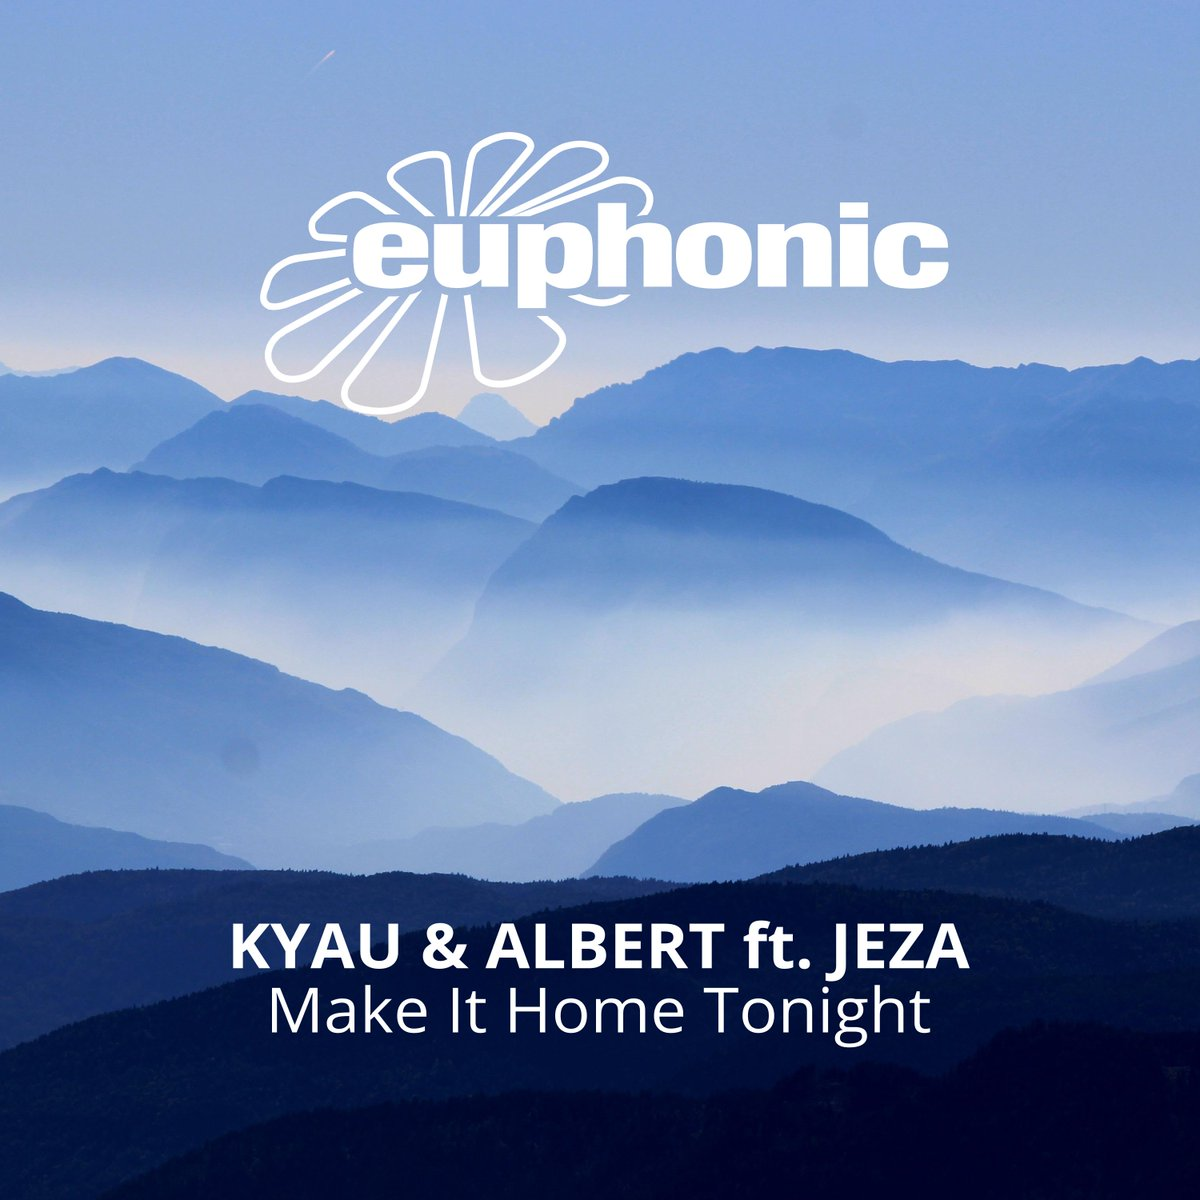 'Make It Home Tonight' by @KyauAndAlbert ft. @Jezasongs as full single release is out on all portals now! 😎 http://www.EUPHONIC.LNK.TO/EUPH278 ...with superb remixes by @suncatchermusic , @shatorockseek + @Djlarsson 🎧  #trancefamily